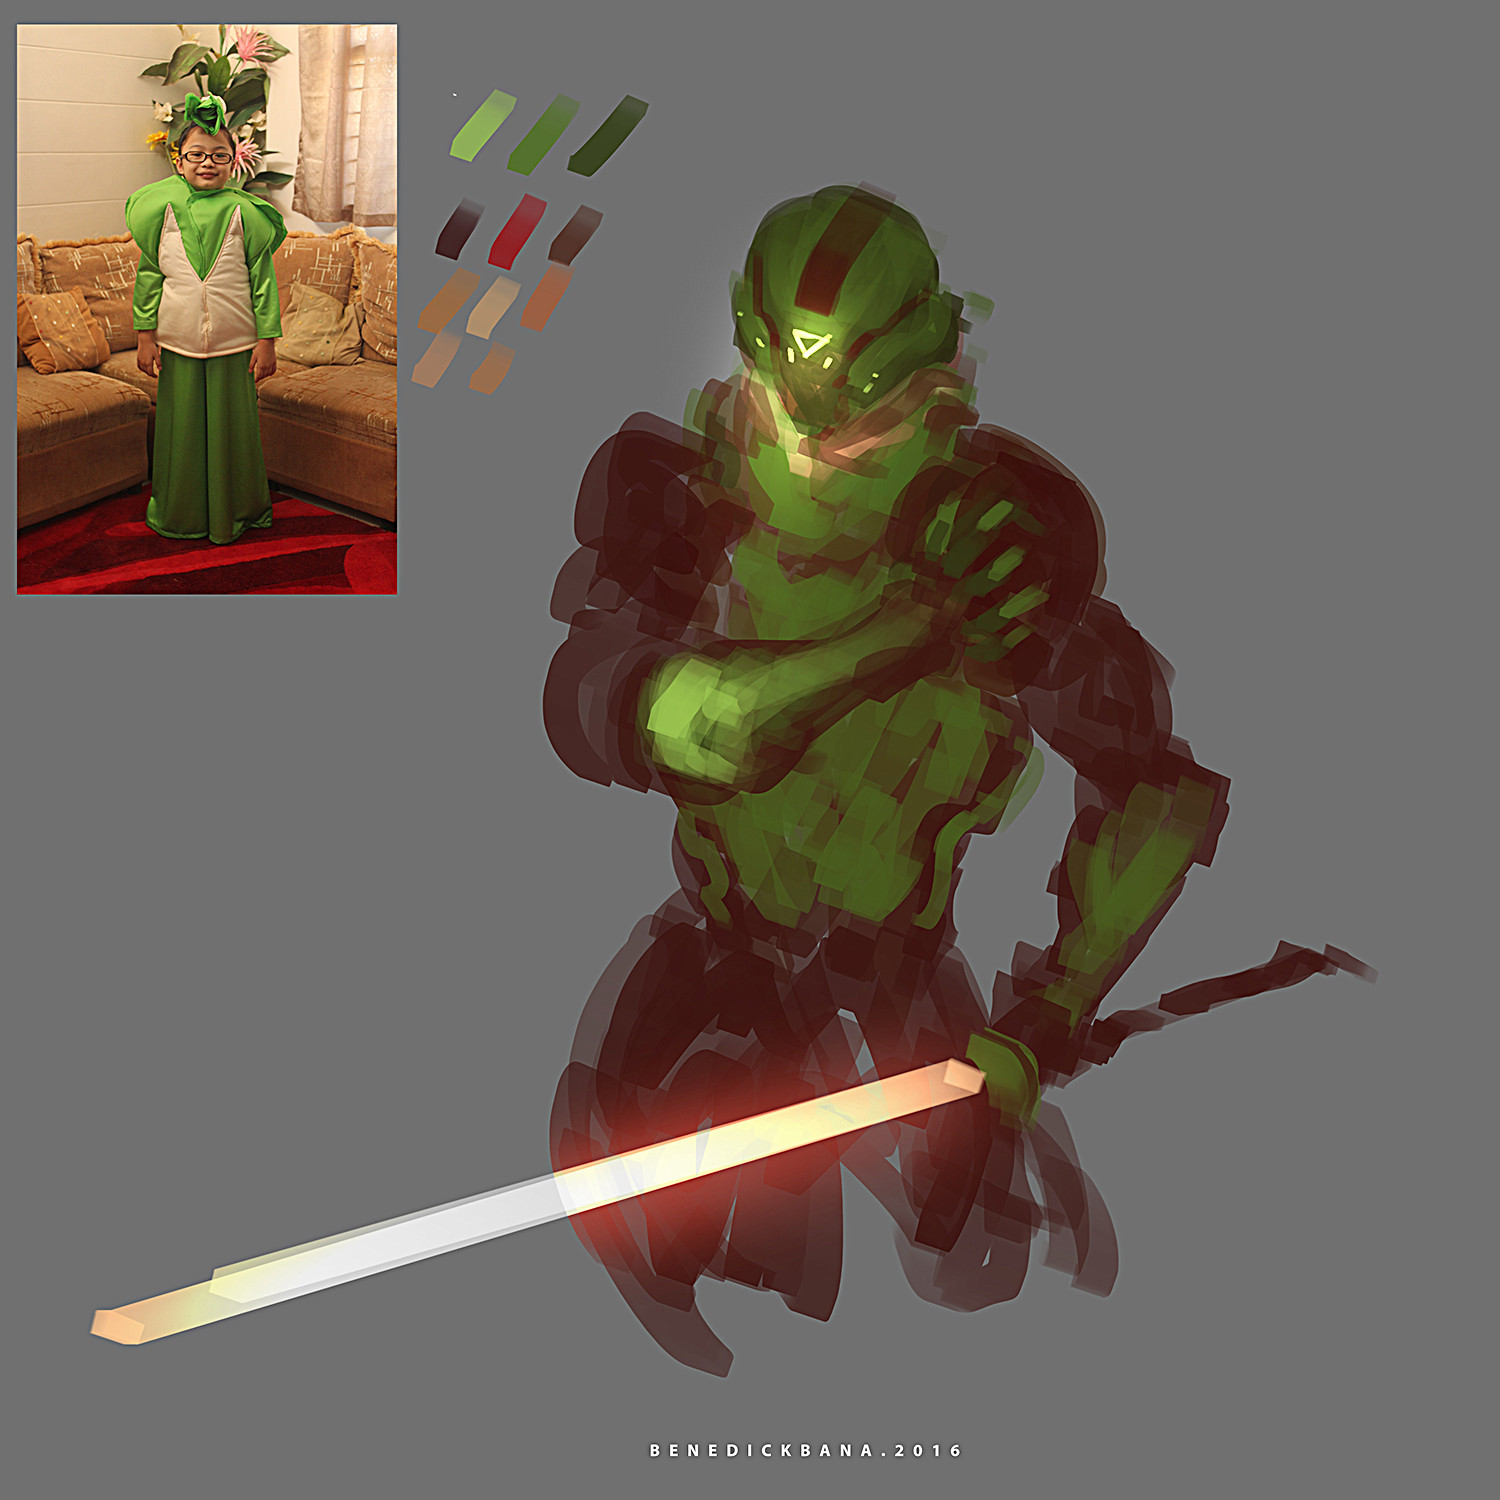 Benedick bana reference color lores